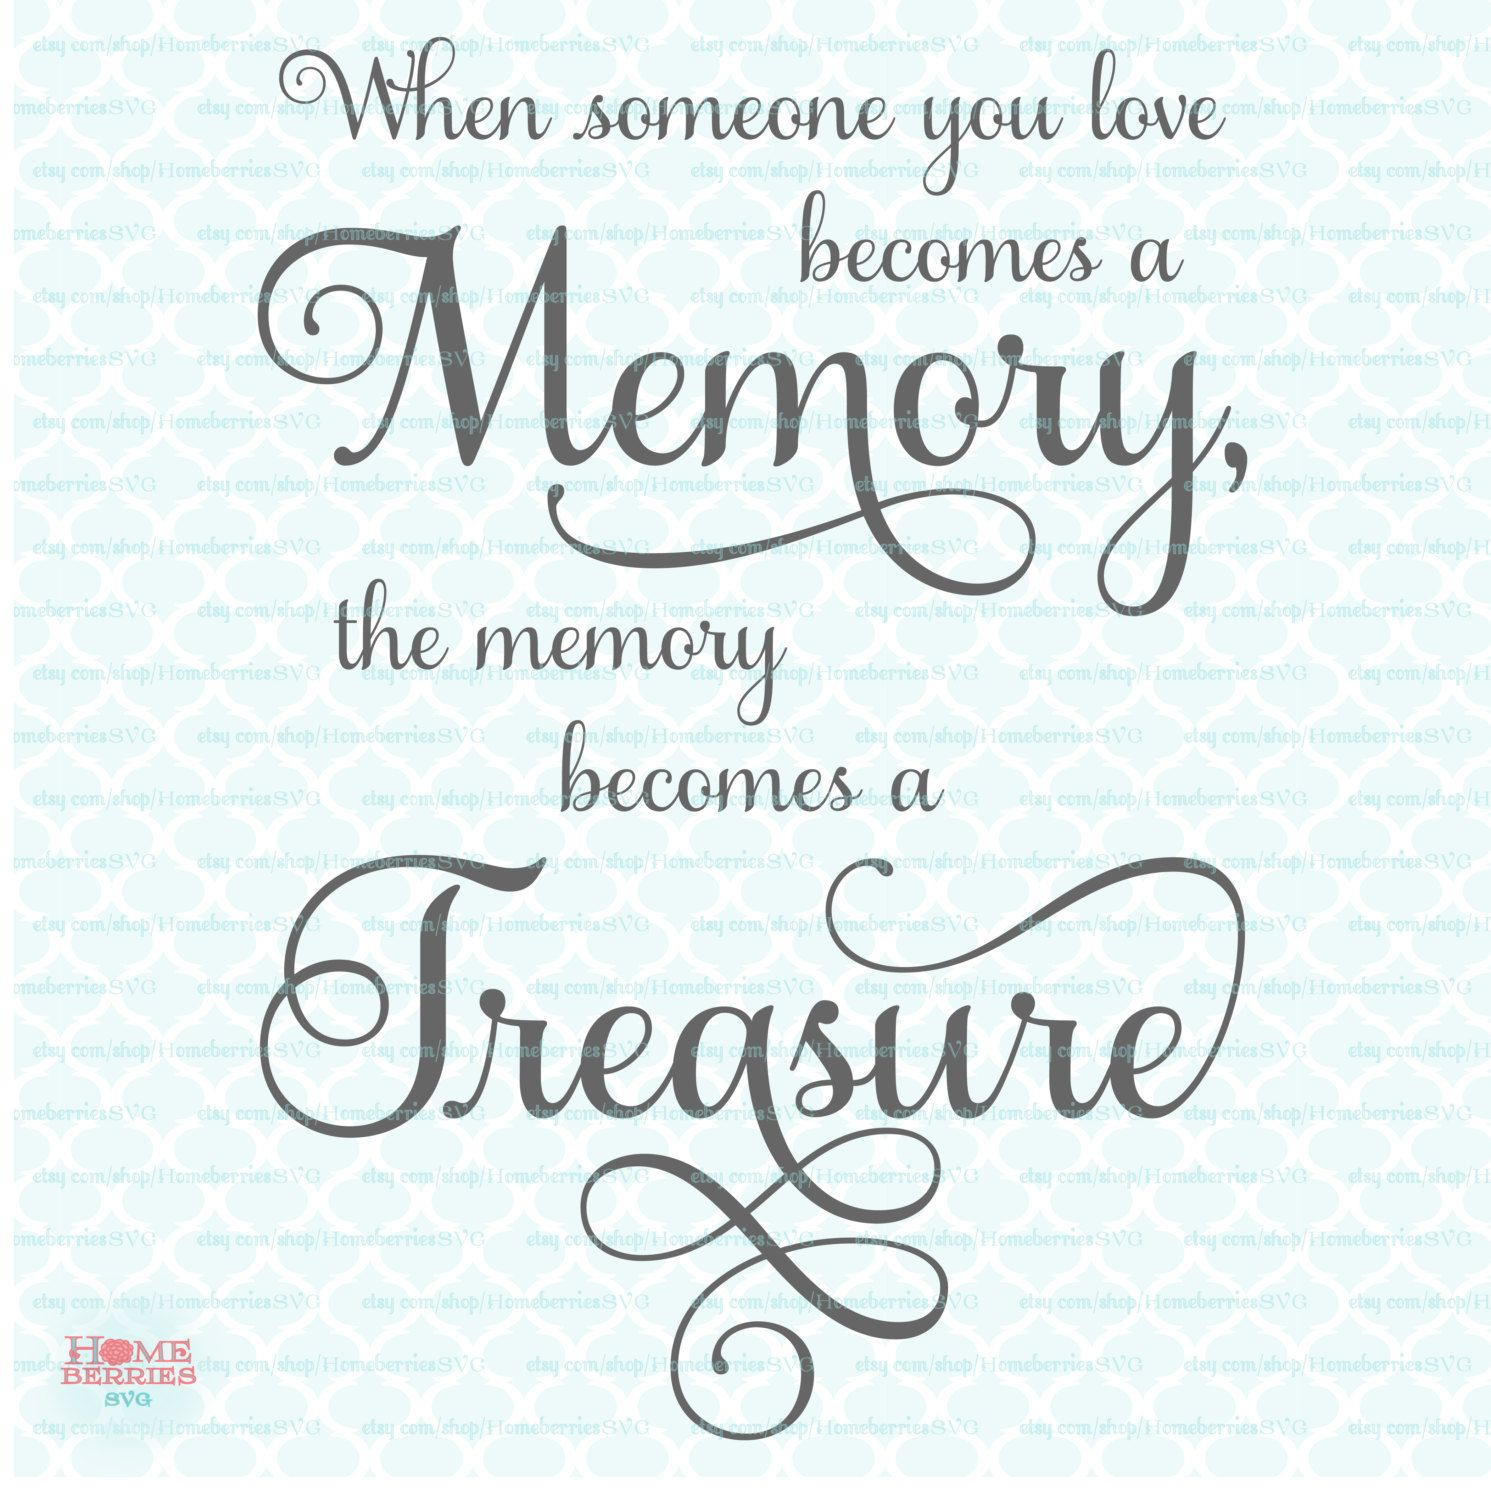 Top Love Memories Quotes Images Love Quotes Collection Within Hd Images